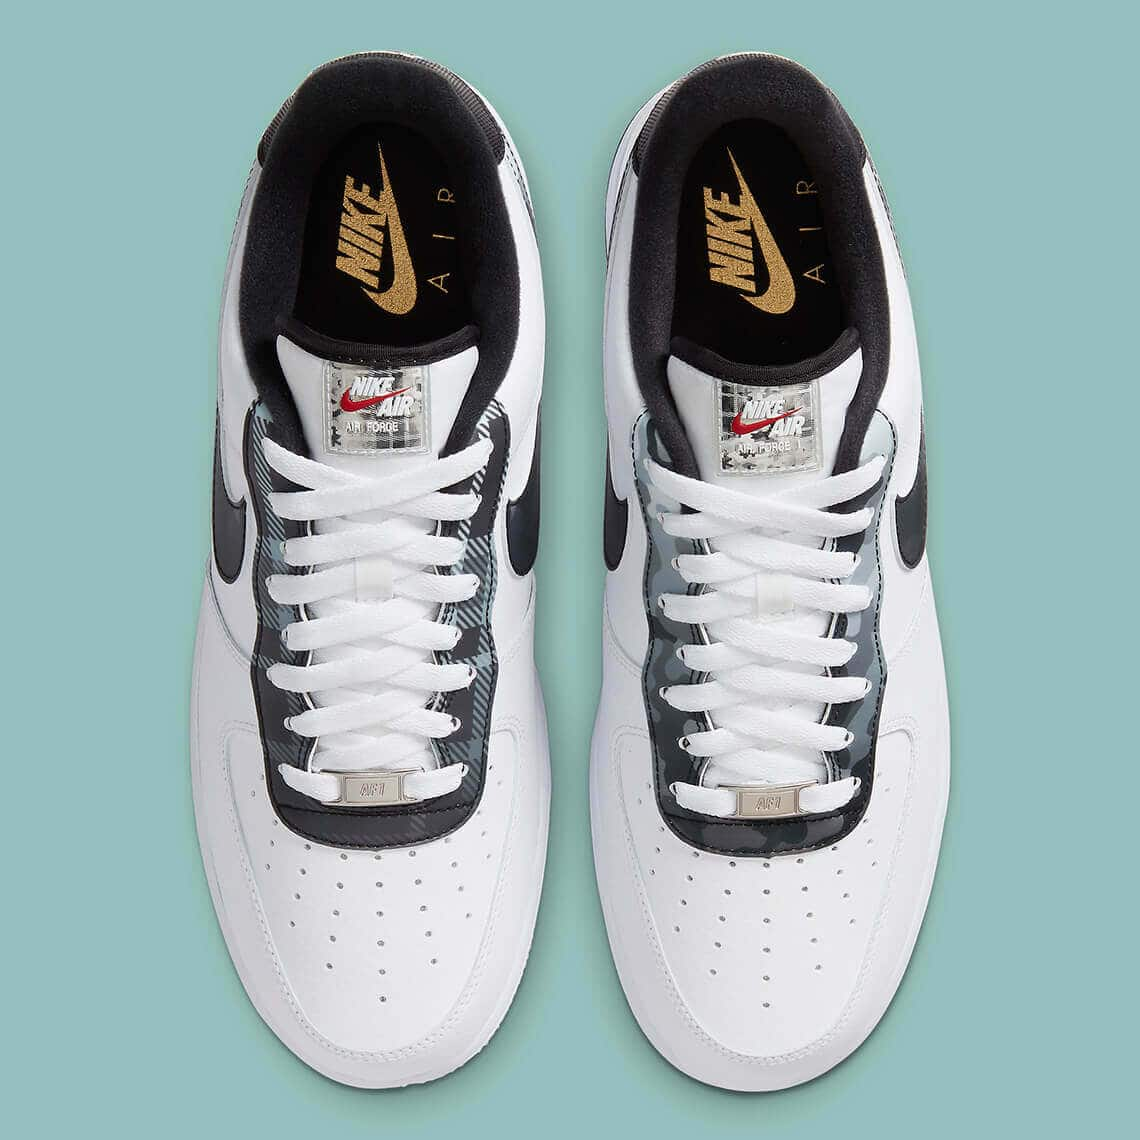 nike air force 1 low remix pack DB1997 100 5